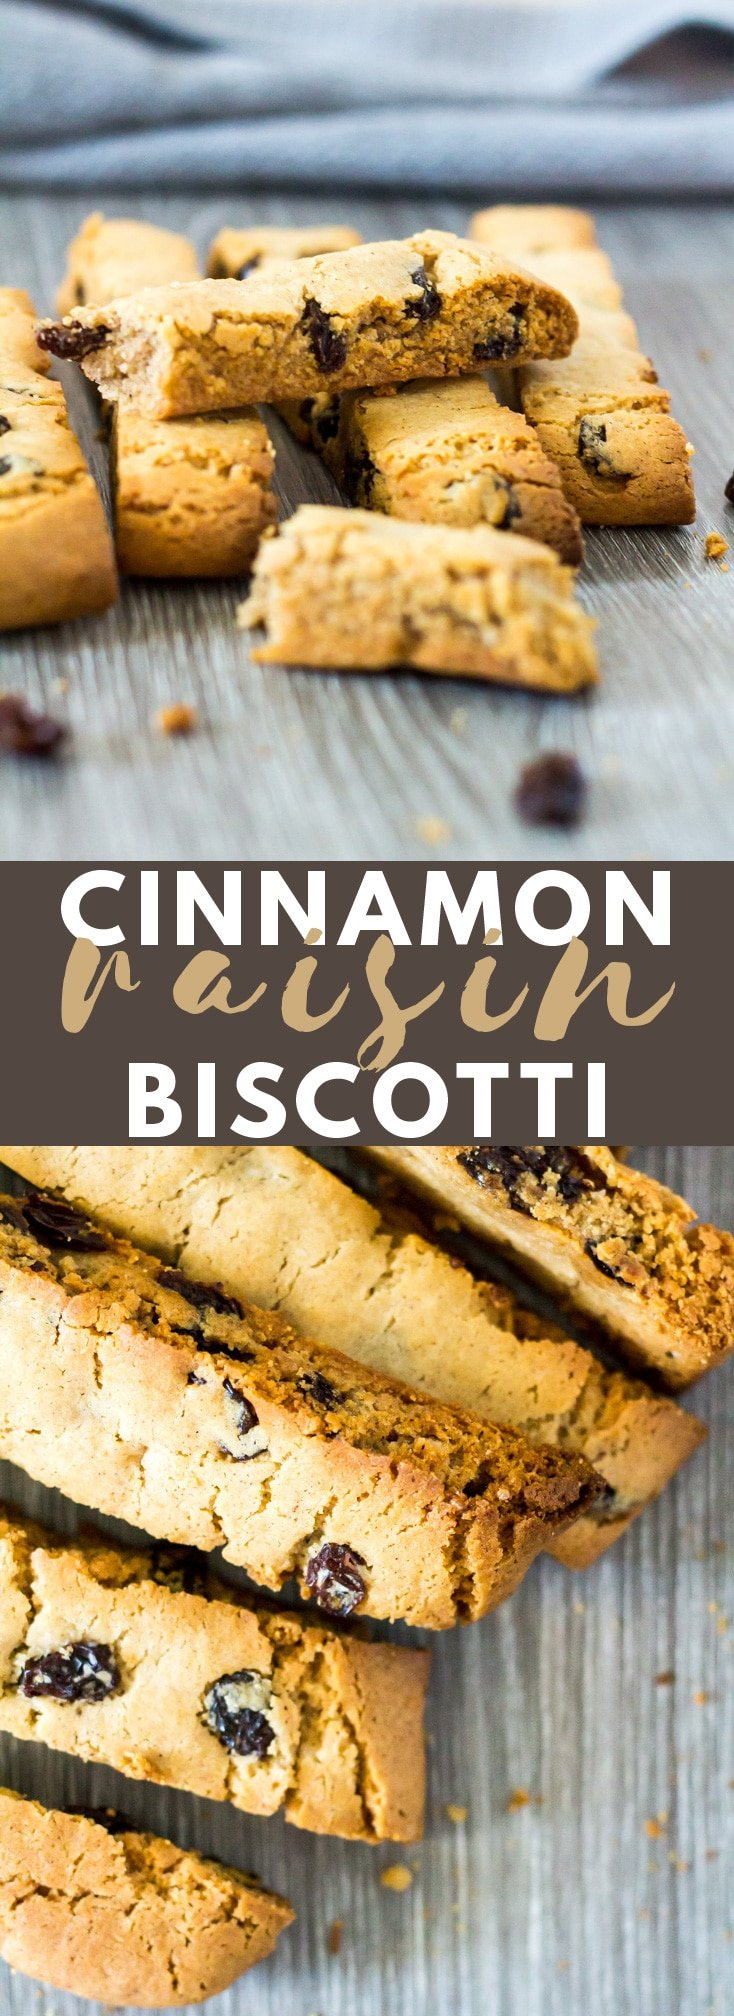 Cinnamon Raisin Biscotti - These deliciously crunchy cinnamon-spiced Biscotti are loaded with raisins, and perfectly shaped for dunking in tea or coffee! #biscotti #cookies #recipe